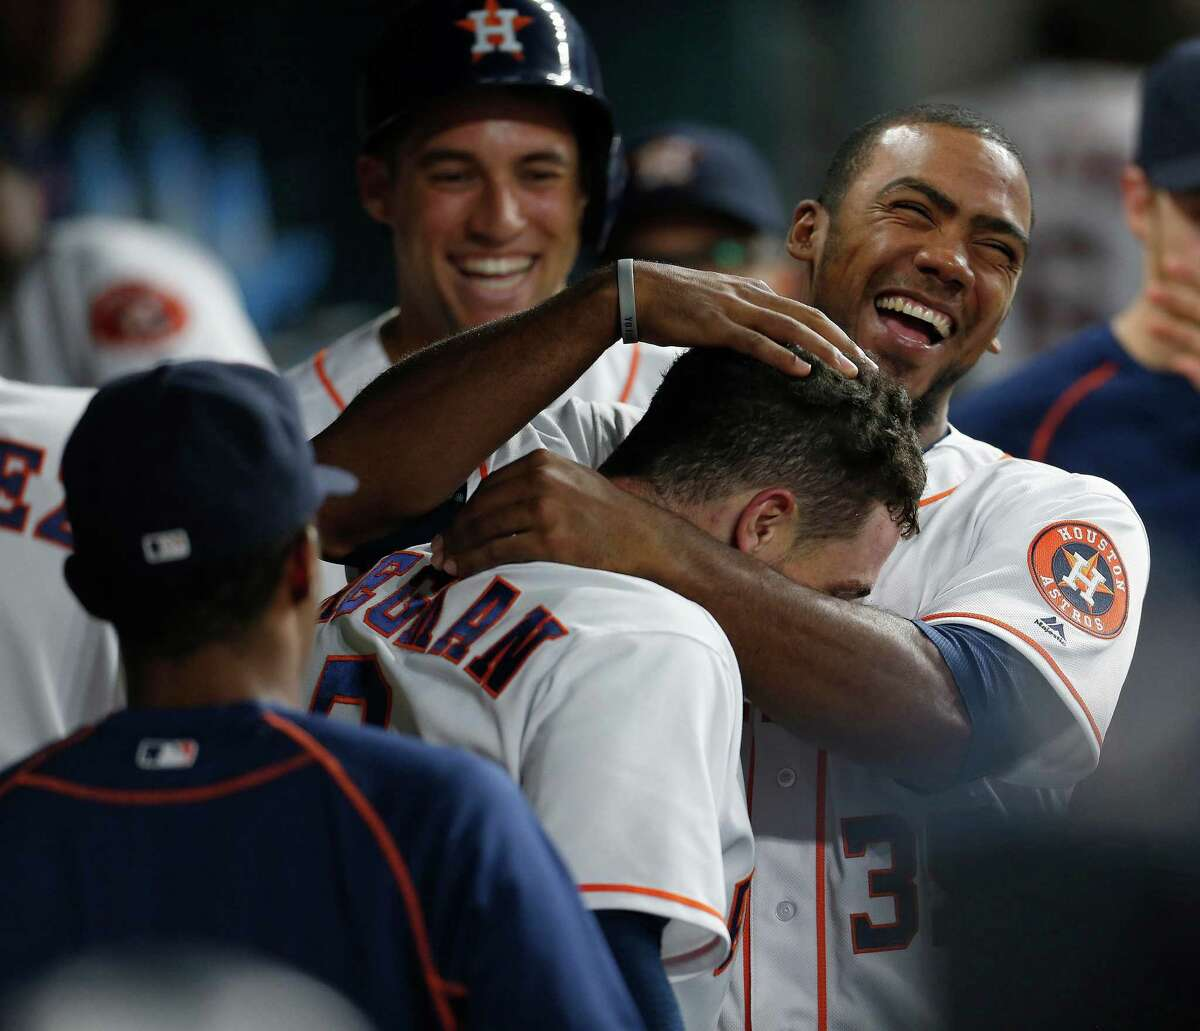 Houston Astros third baseman Alex Bregman (2) celebrates with Teoscar Hernandez (35) after hitting his first major league home run during the first inning of an MLB game at Minute Maid Park,Tuesday, Aug. 16, 2016, in Houston.